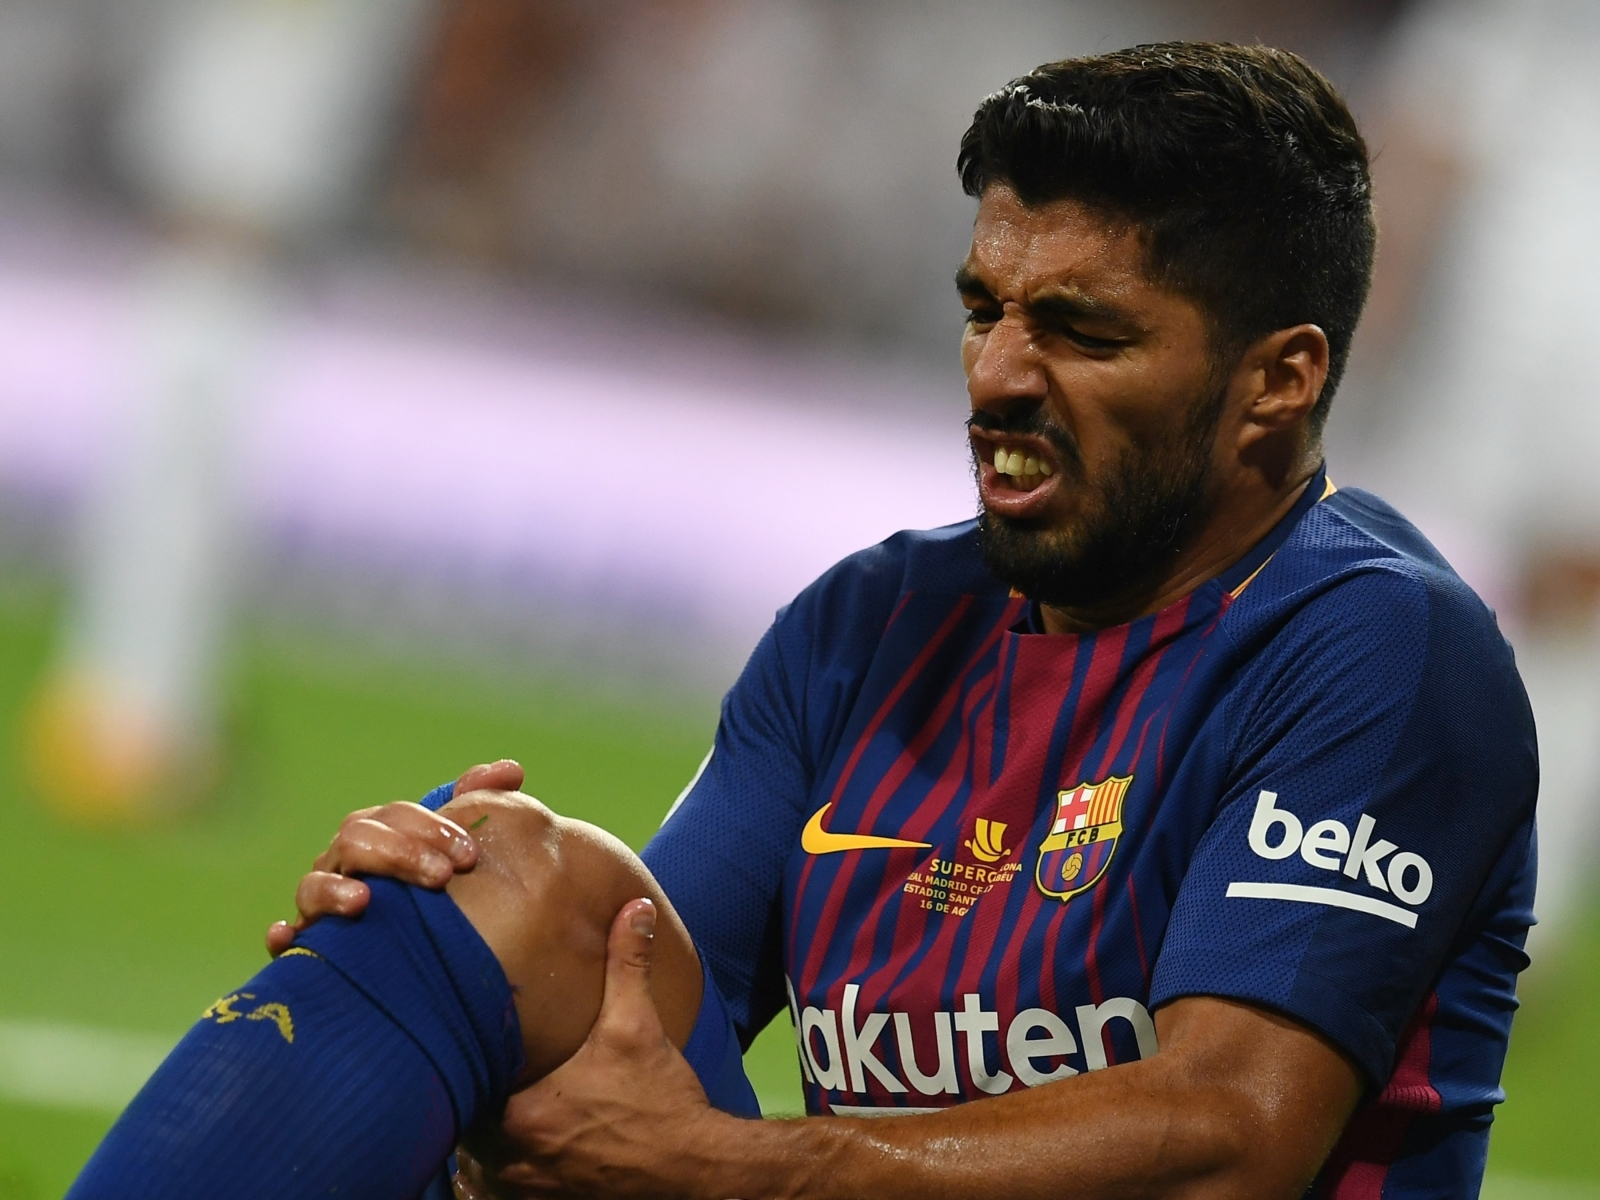 Barcelona star Luis Suarez may require surgery to remove cyst on